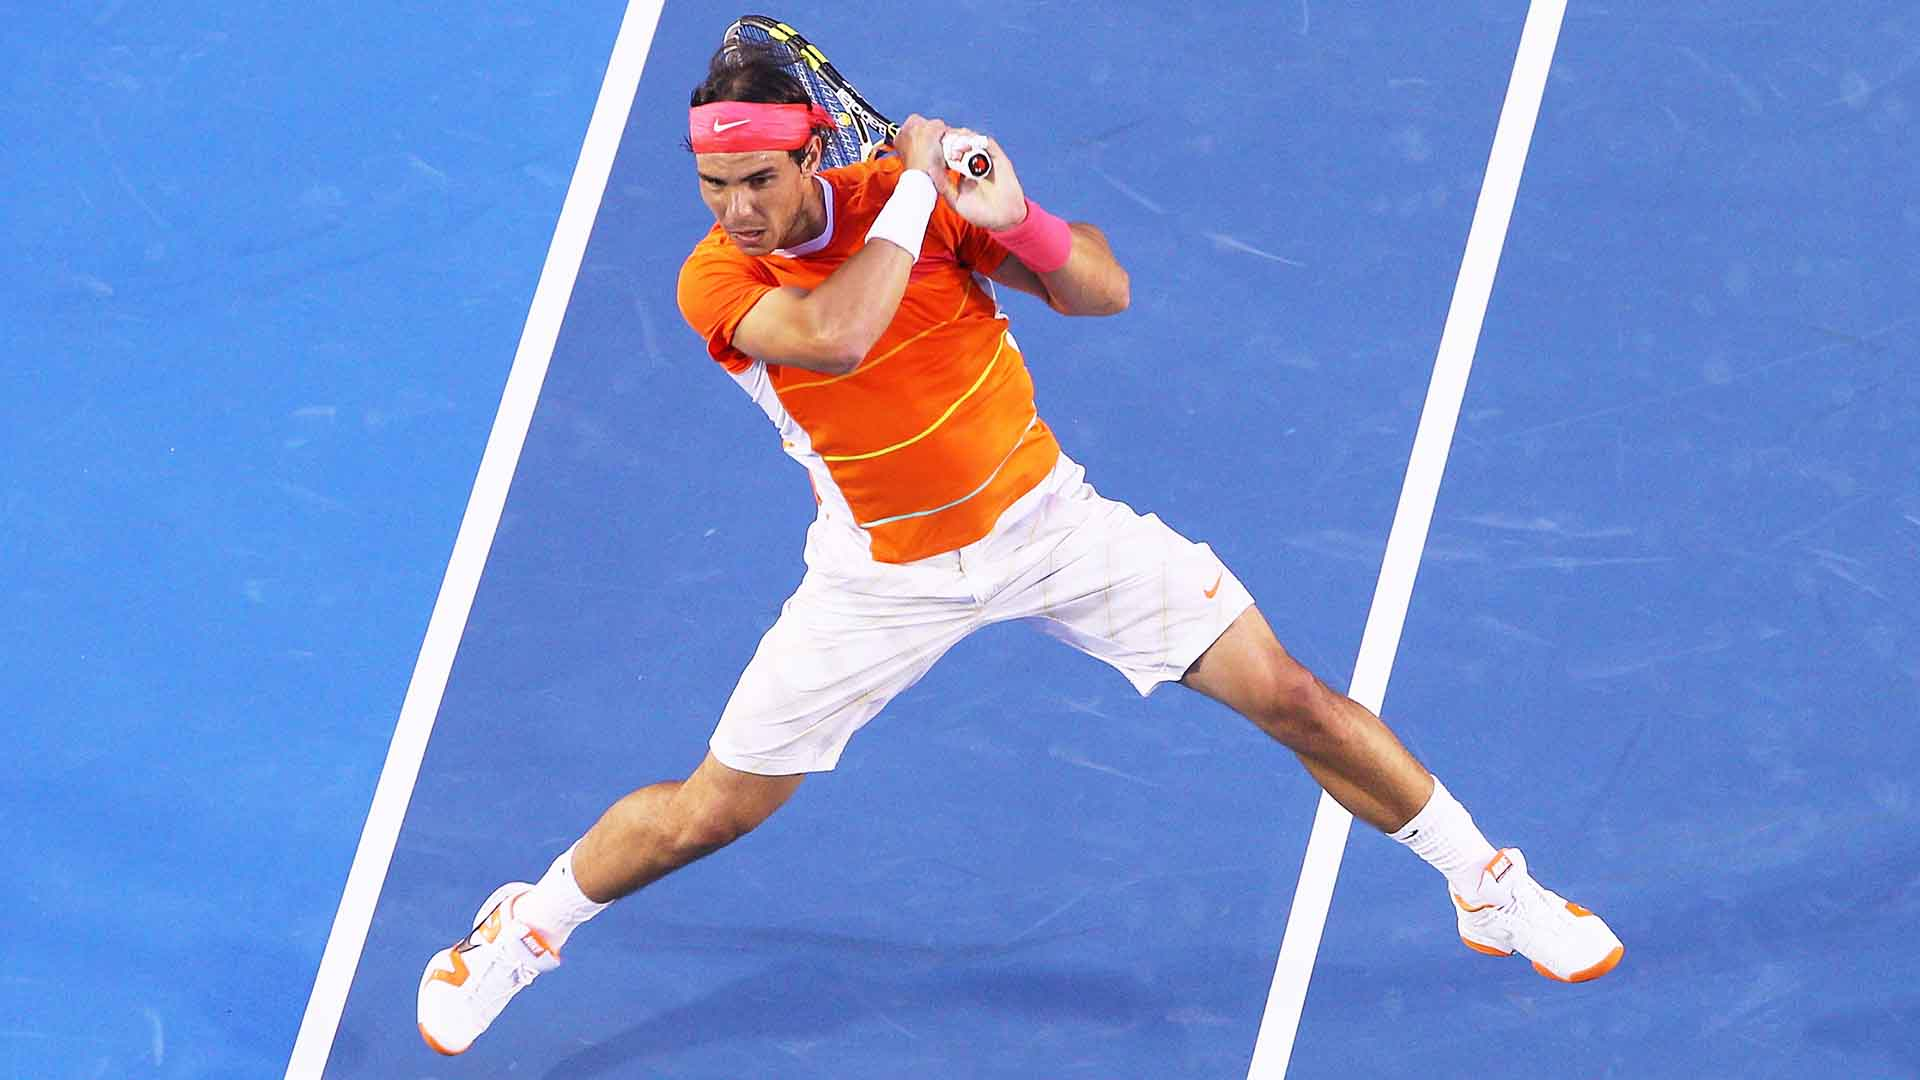 Rafael Nadal lost his only Grand Slam match of 2010 against Andy Murray in the Australian Open quarter-finals.